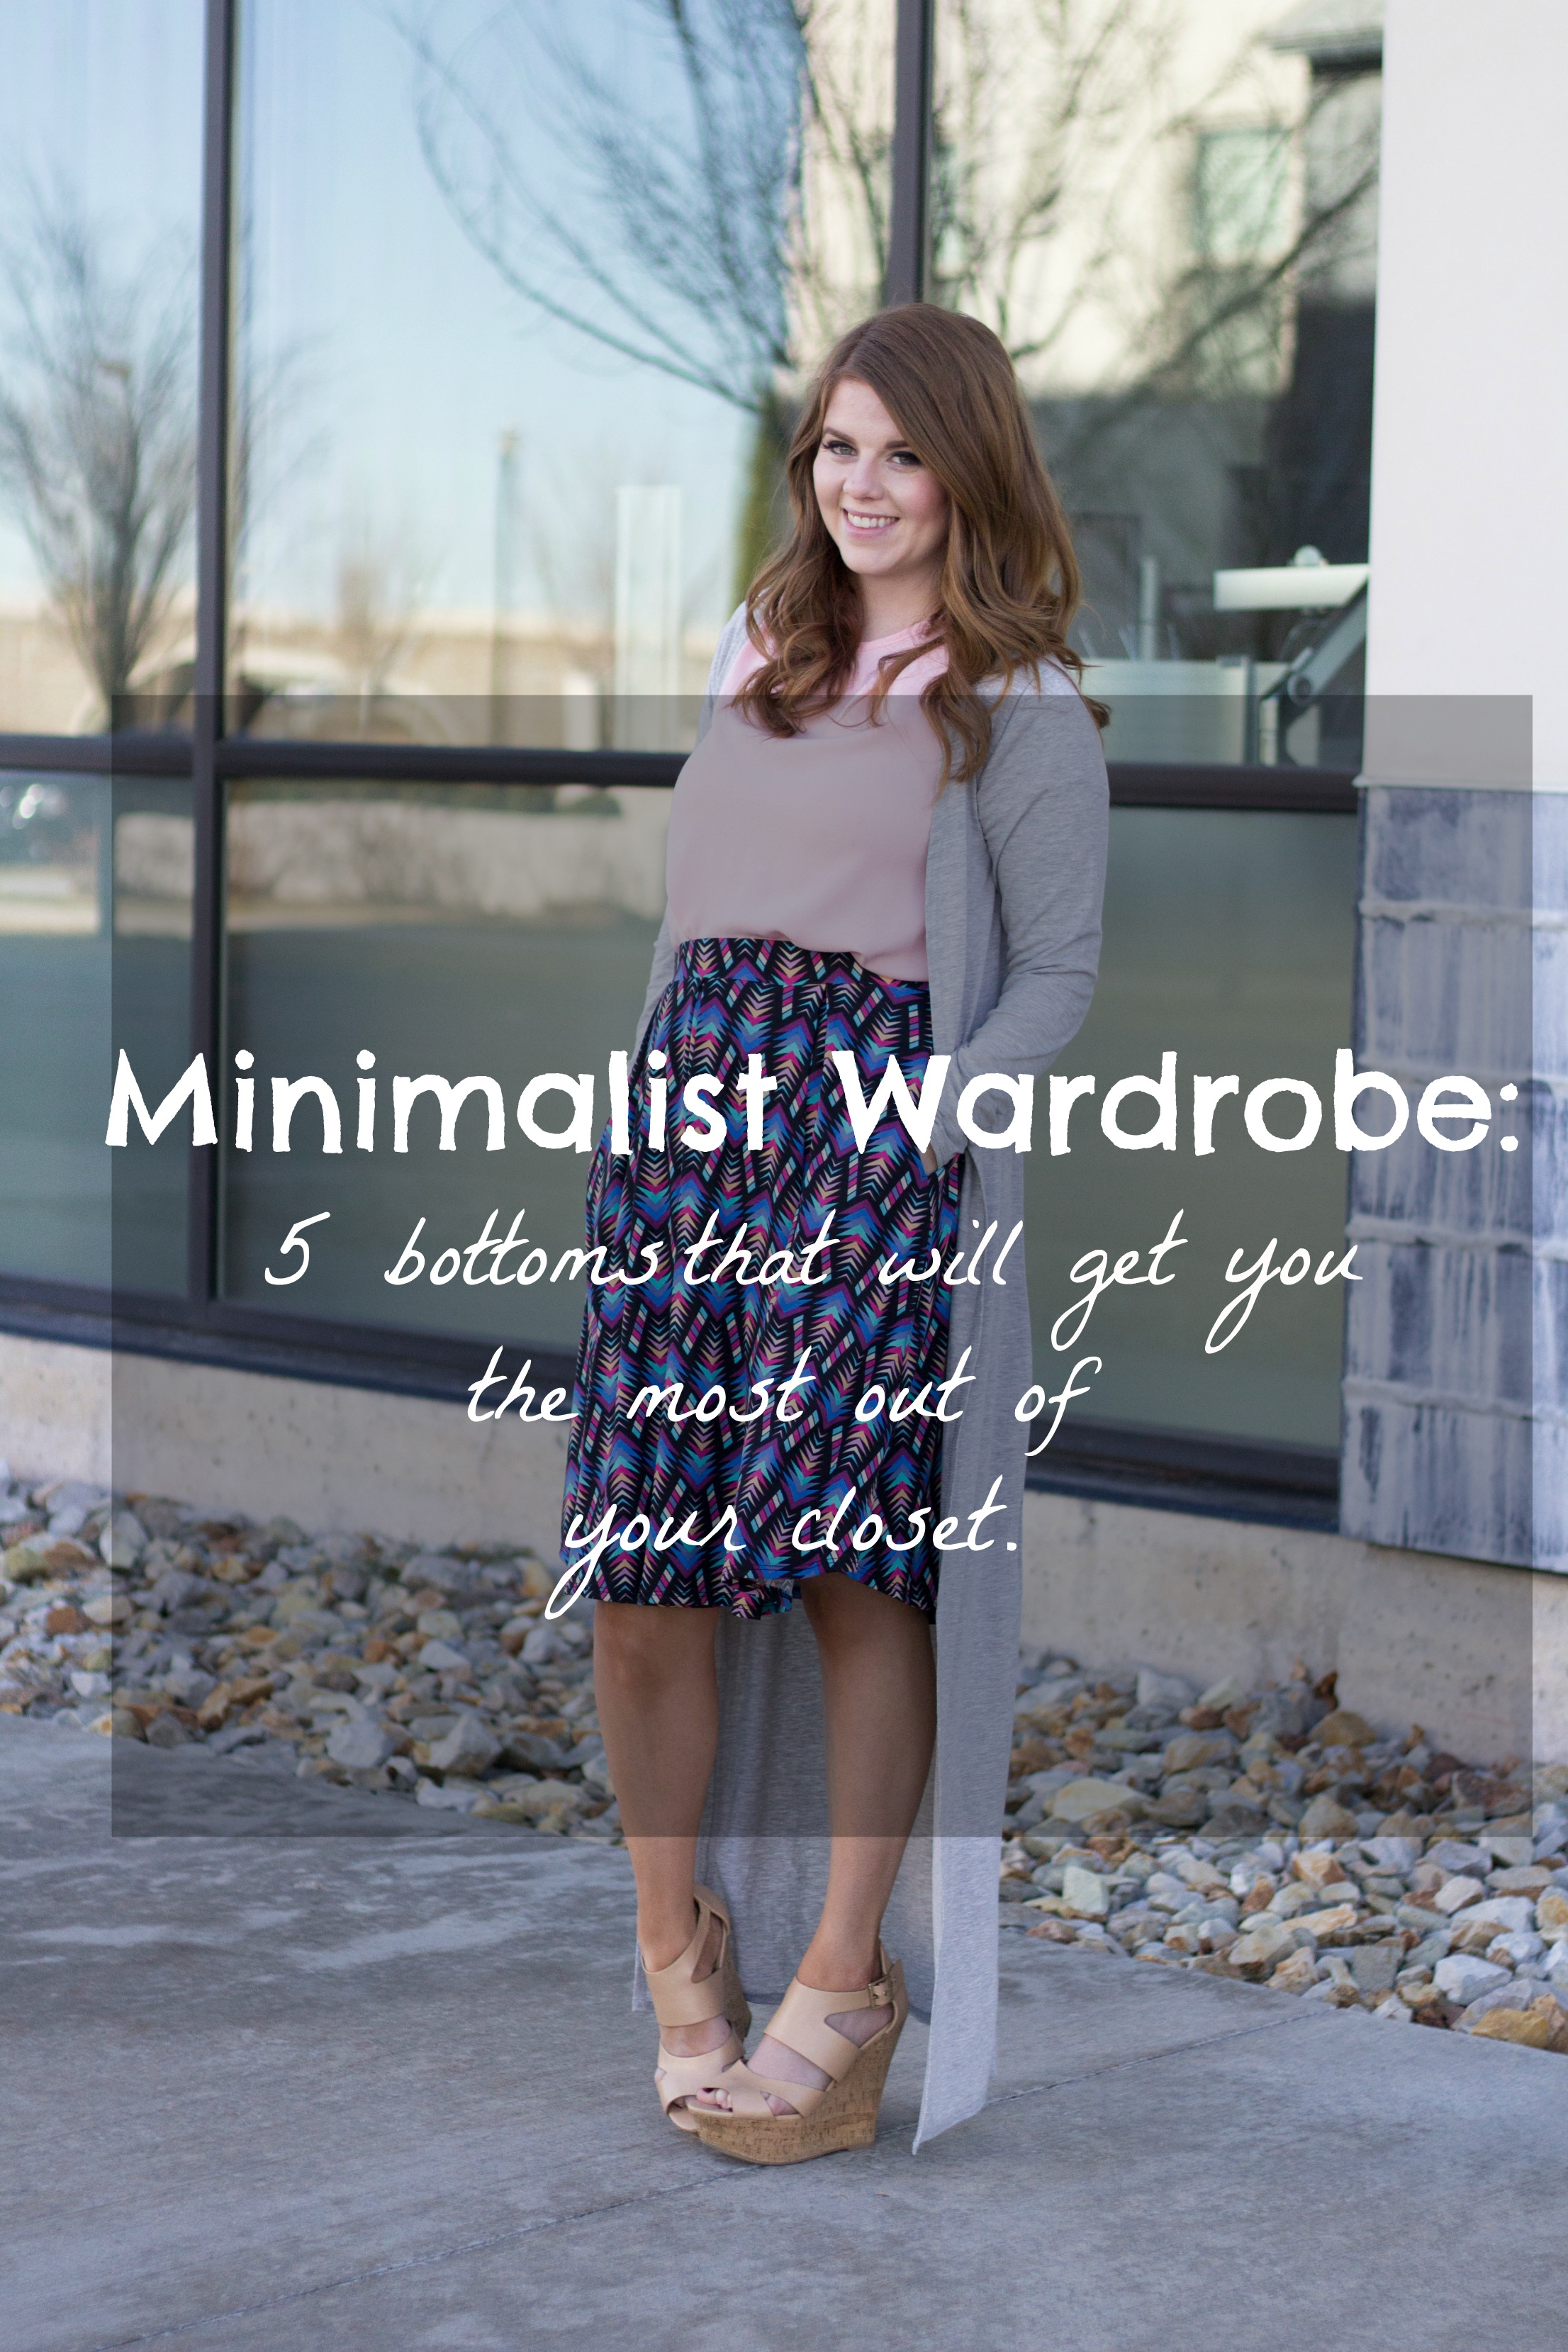 Minimalist Wardrobe: 5 Bottoms for your Minimalist Wardrobe graphic